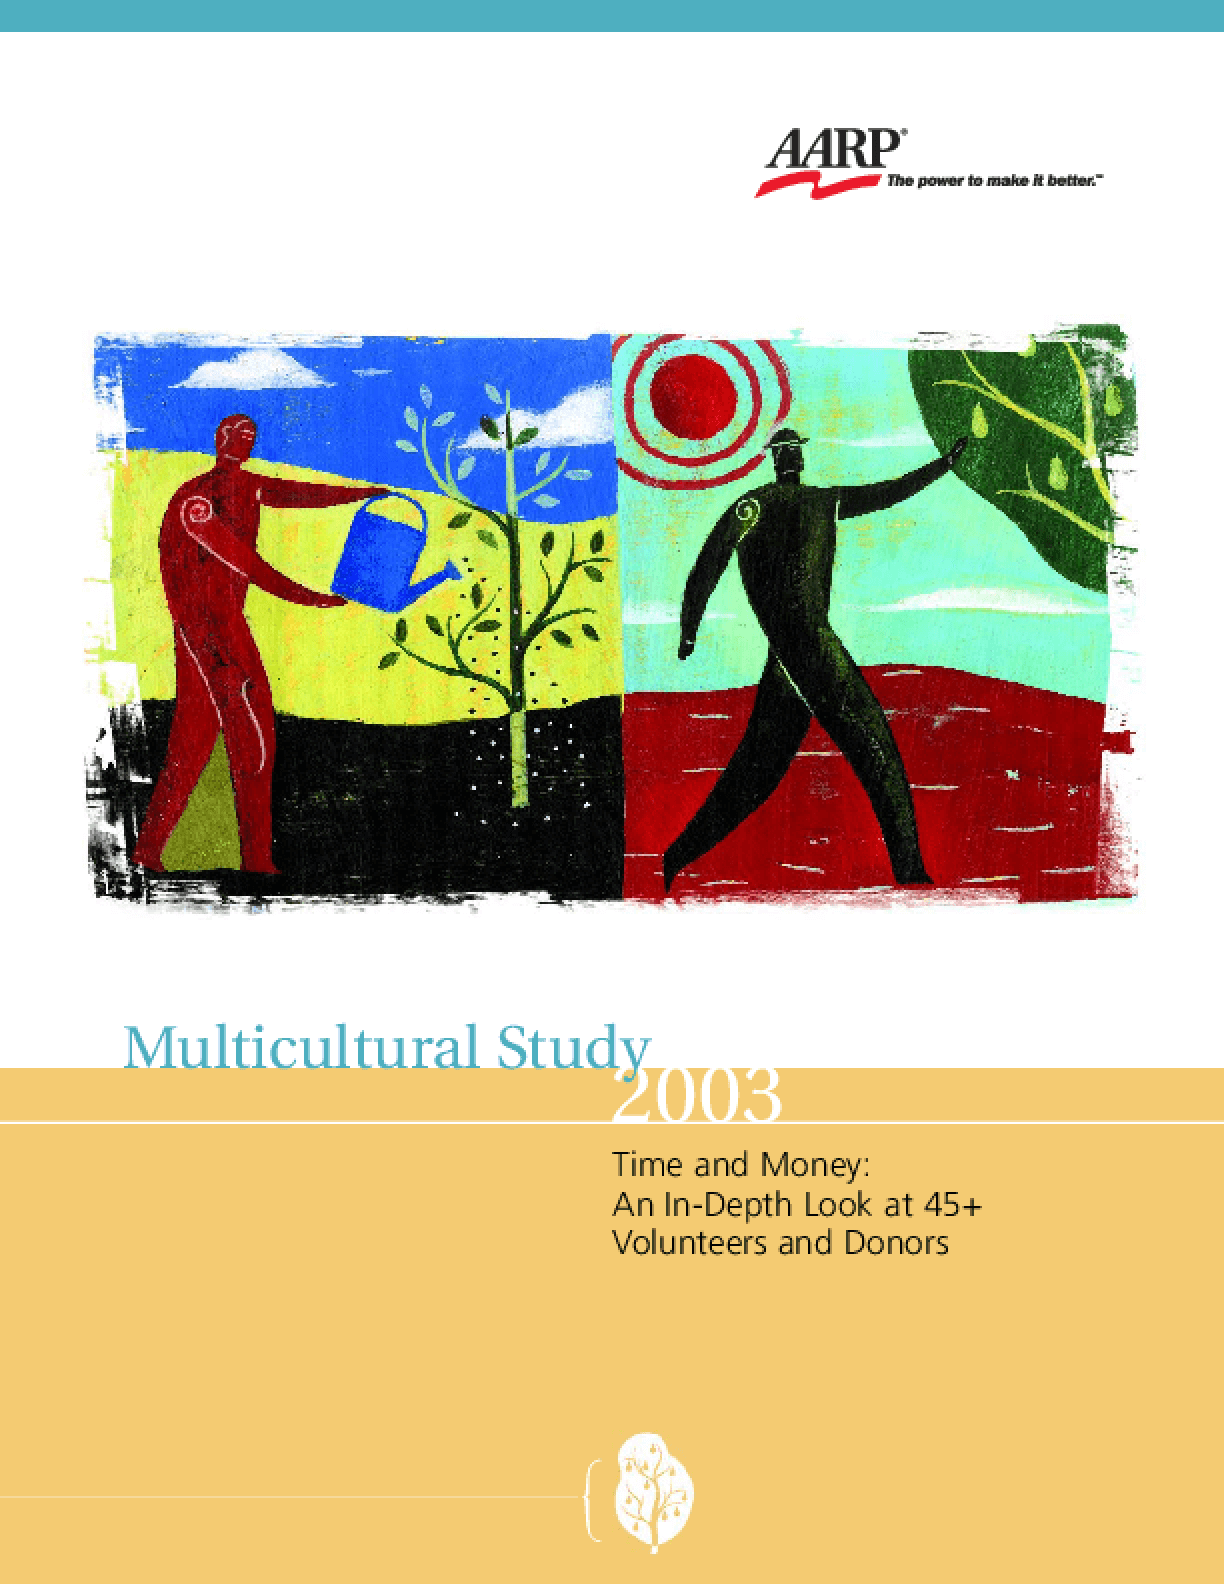 Multicultural Study 2003 Time and Money: an In-depth Look At 45+ Volunteers and Donors